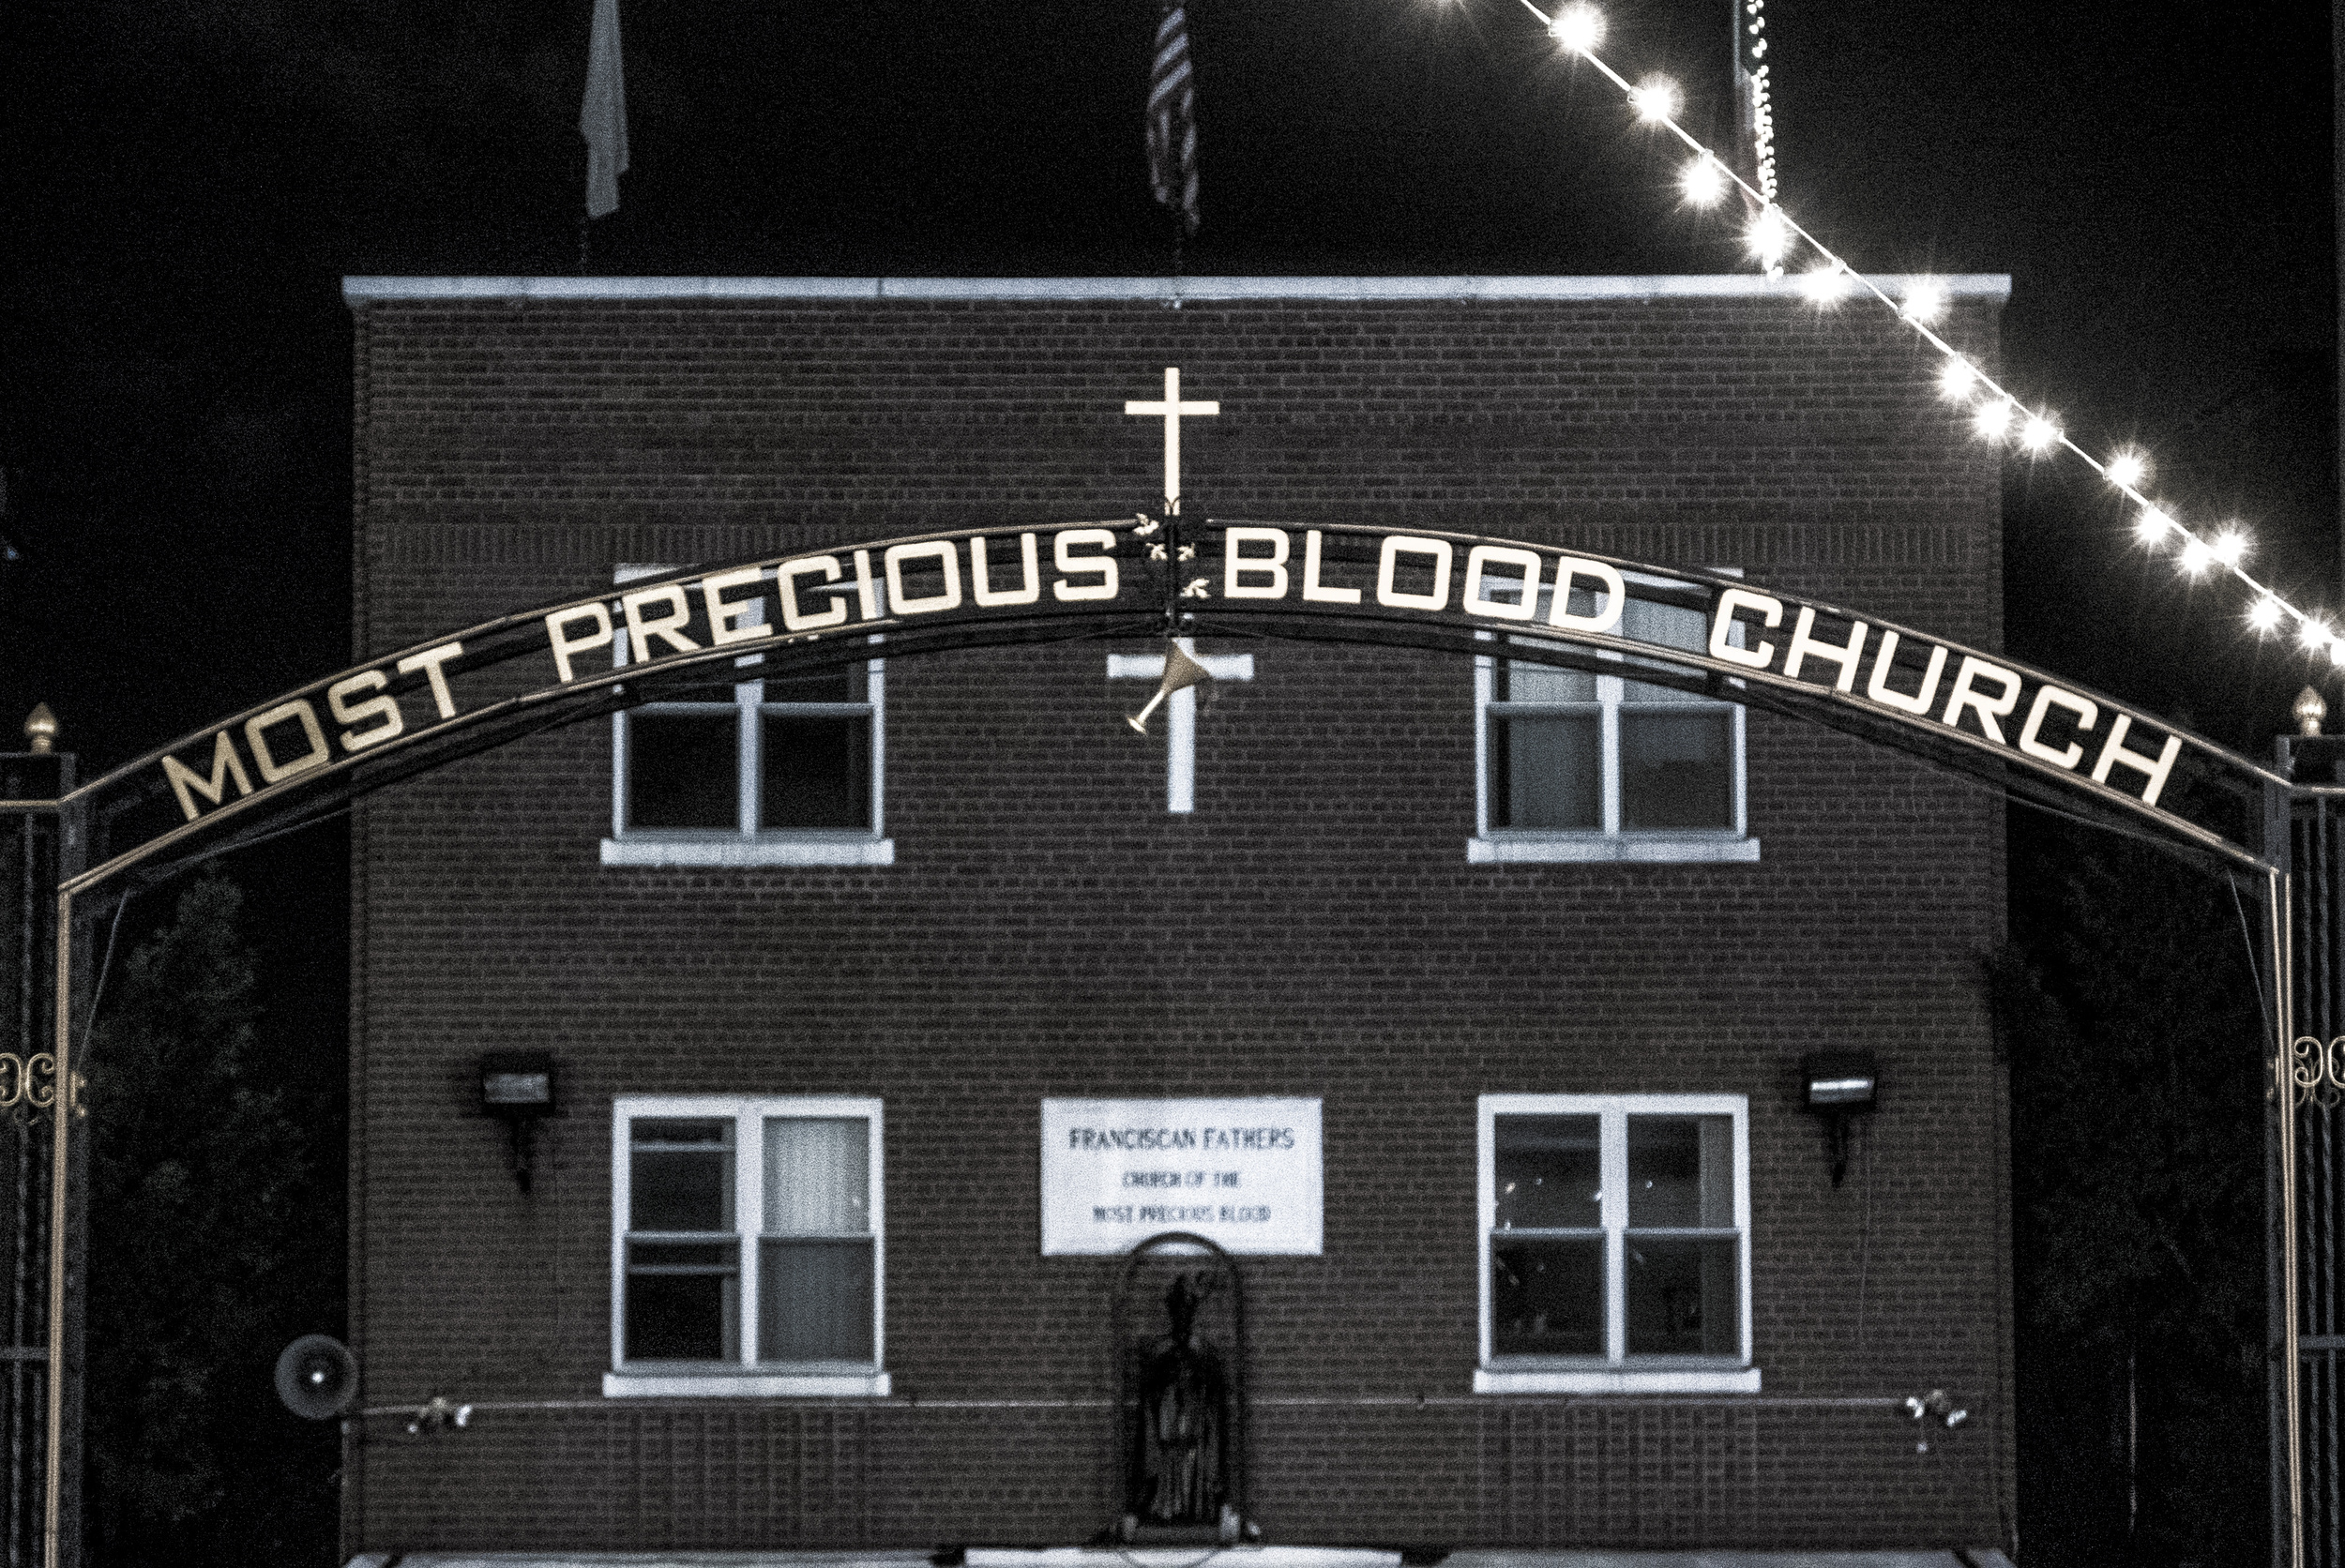 Most Precious Blood.JPG